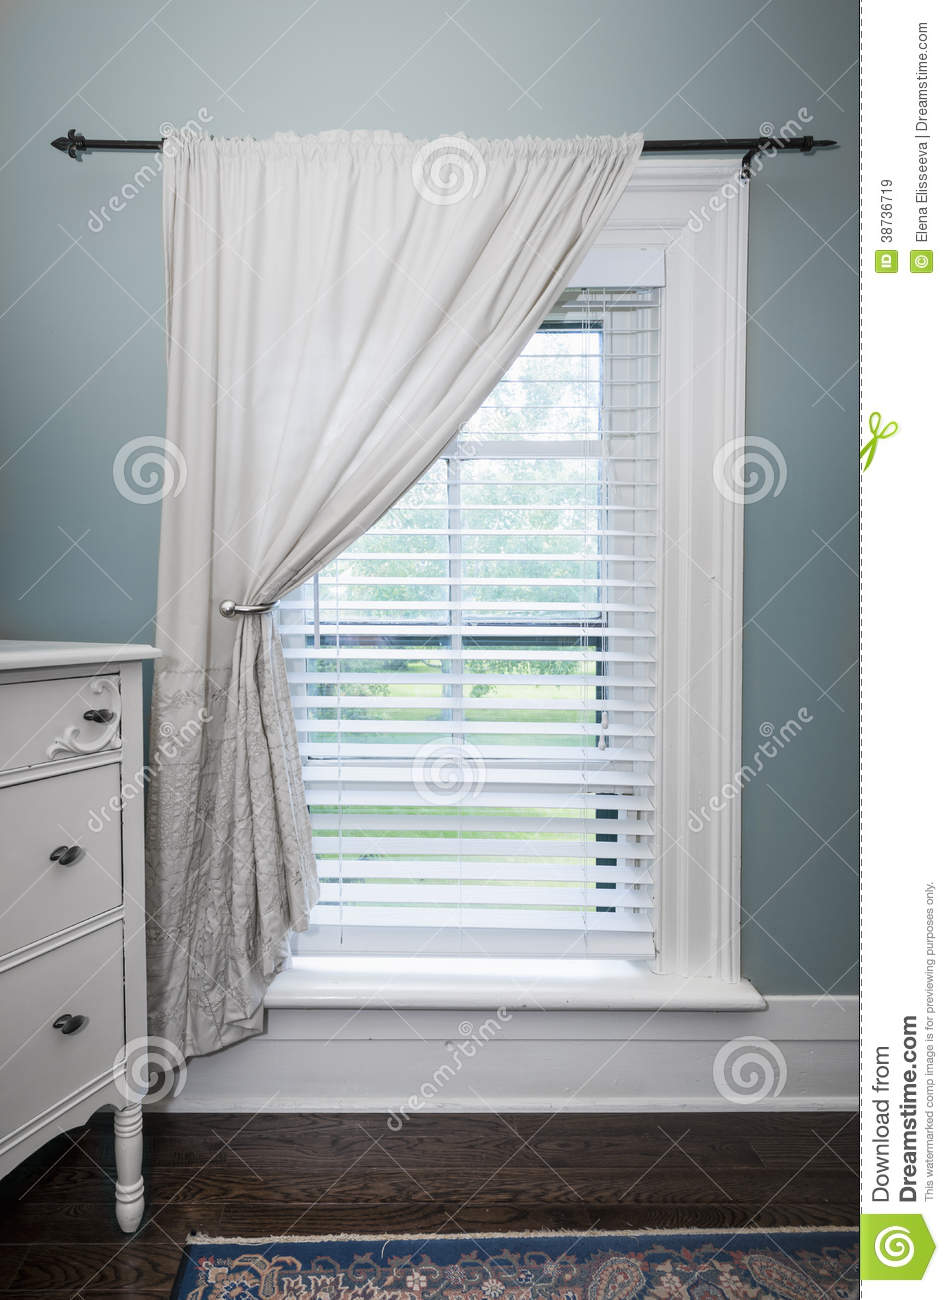 Window with blinds and curtain stock image image of Curtains venetian blinds